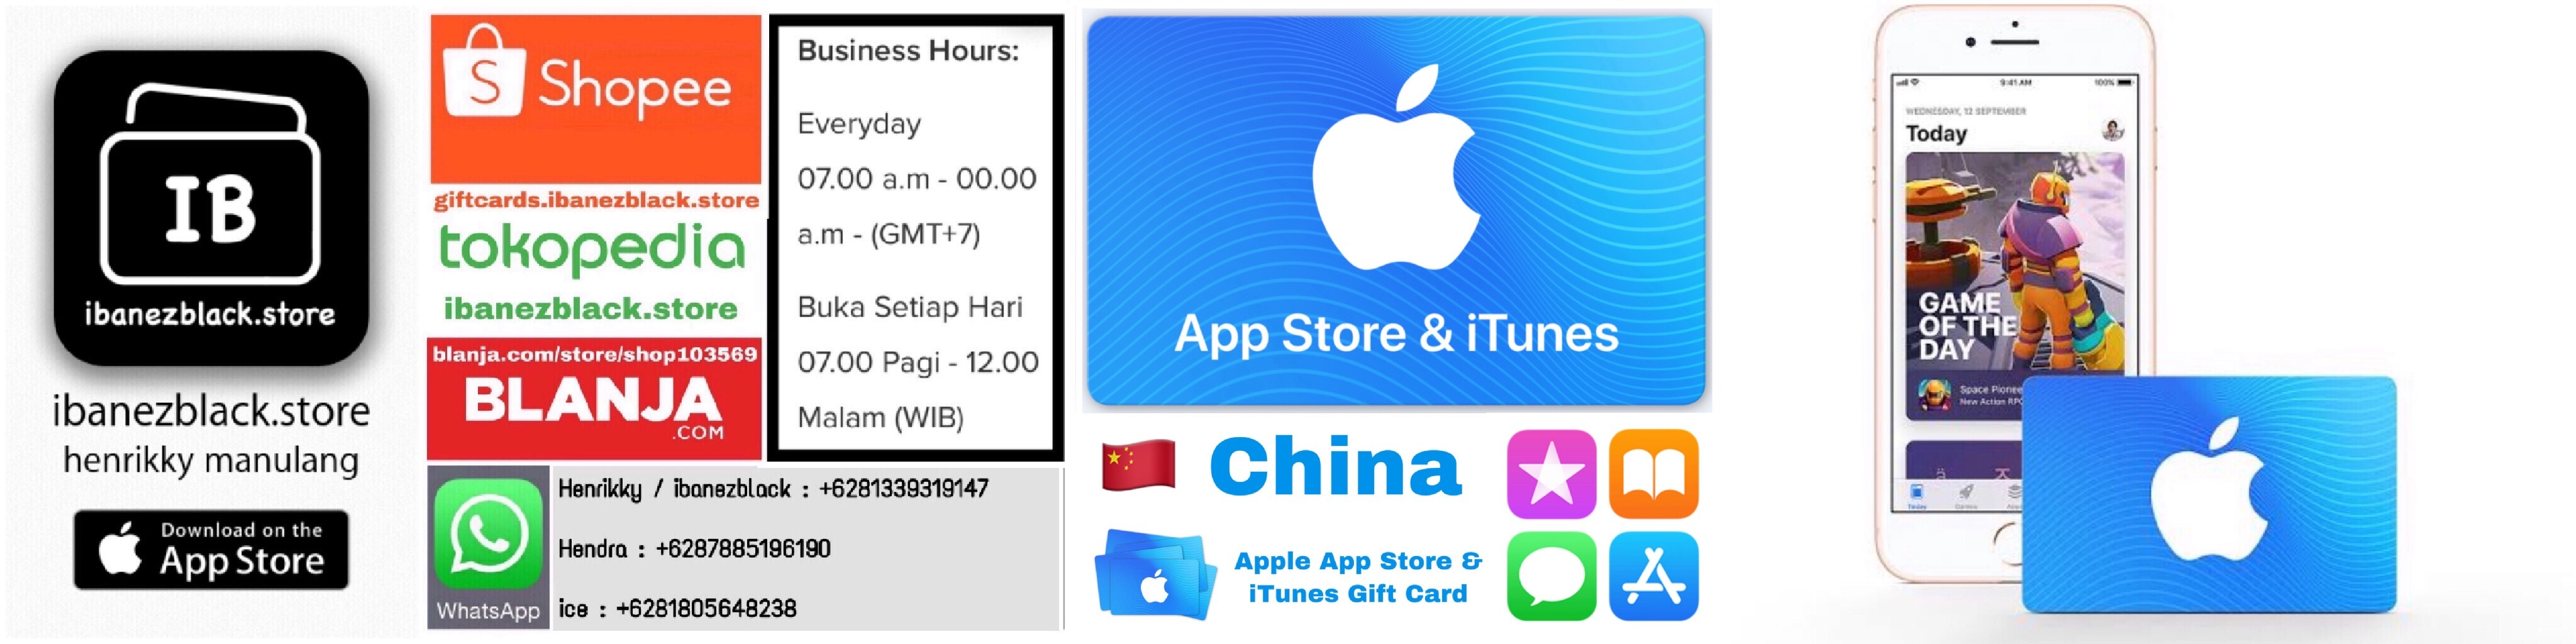 Apple App Store & iTunes Gift Card China